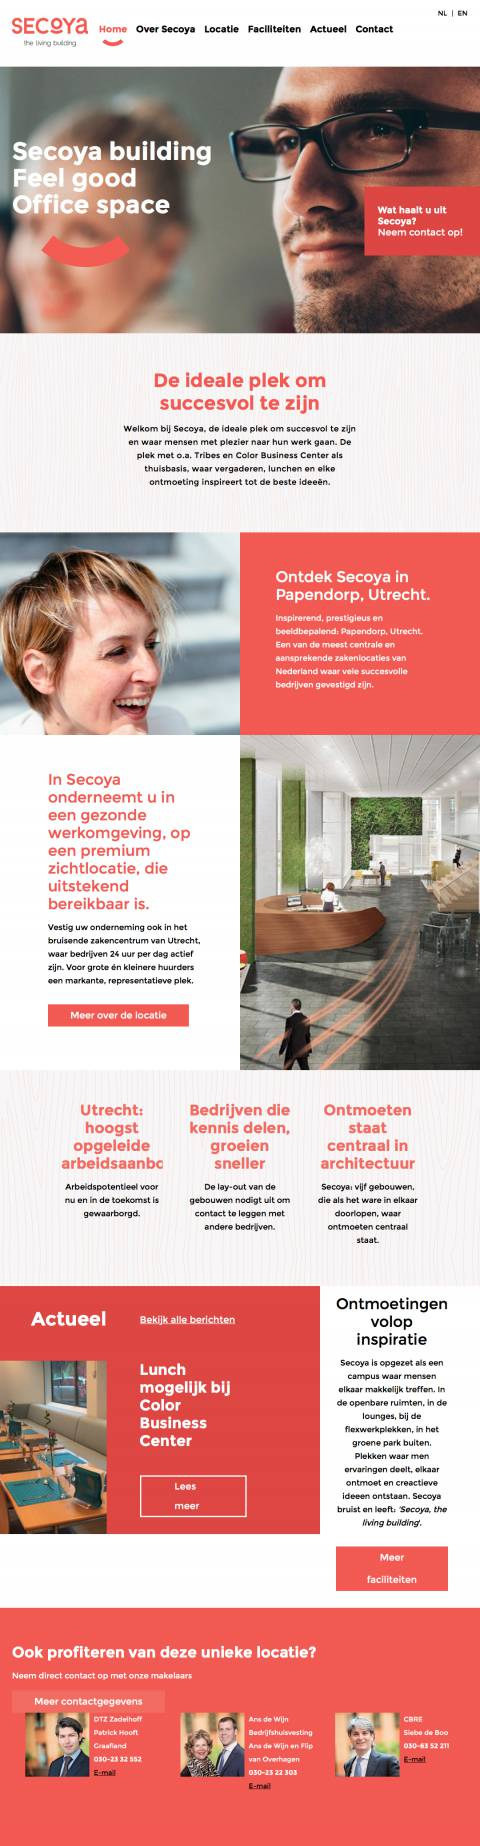 Home - Secoya the living building